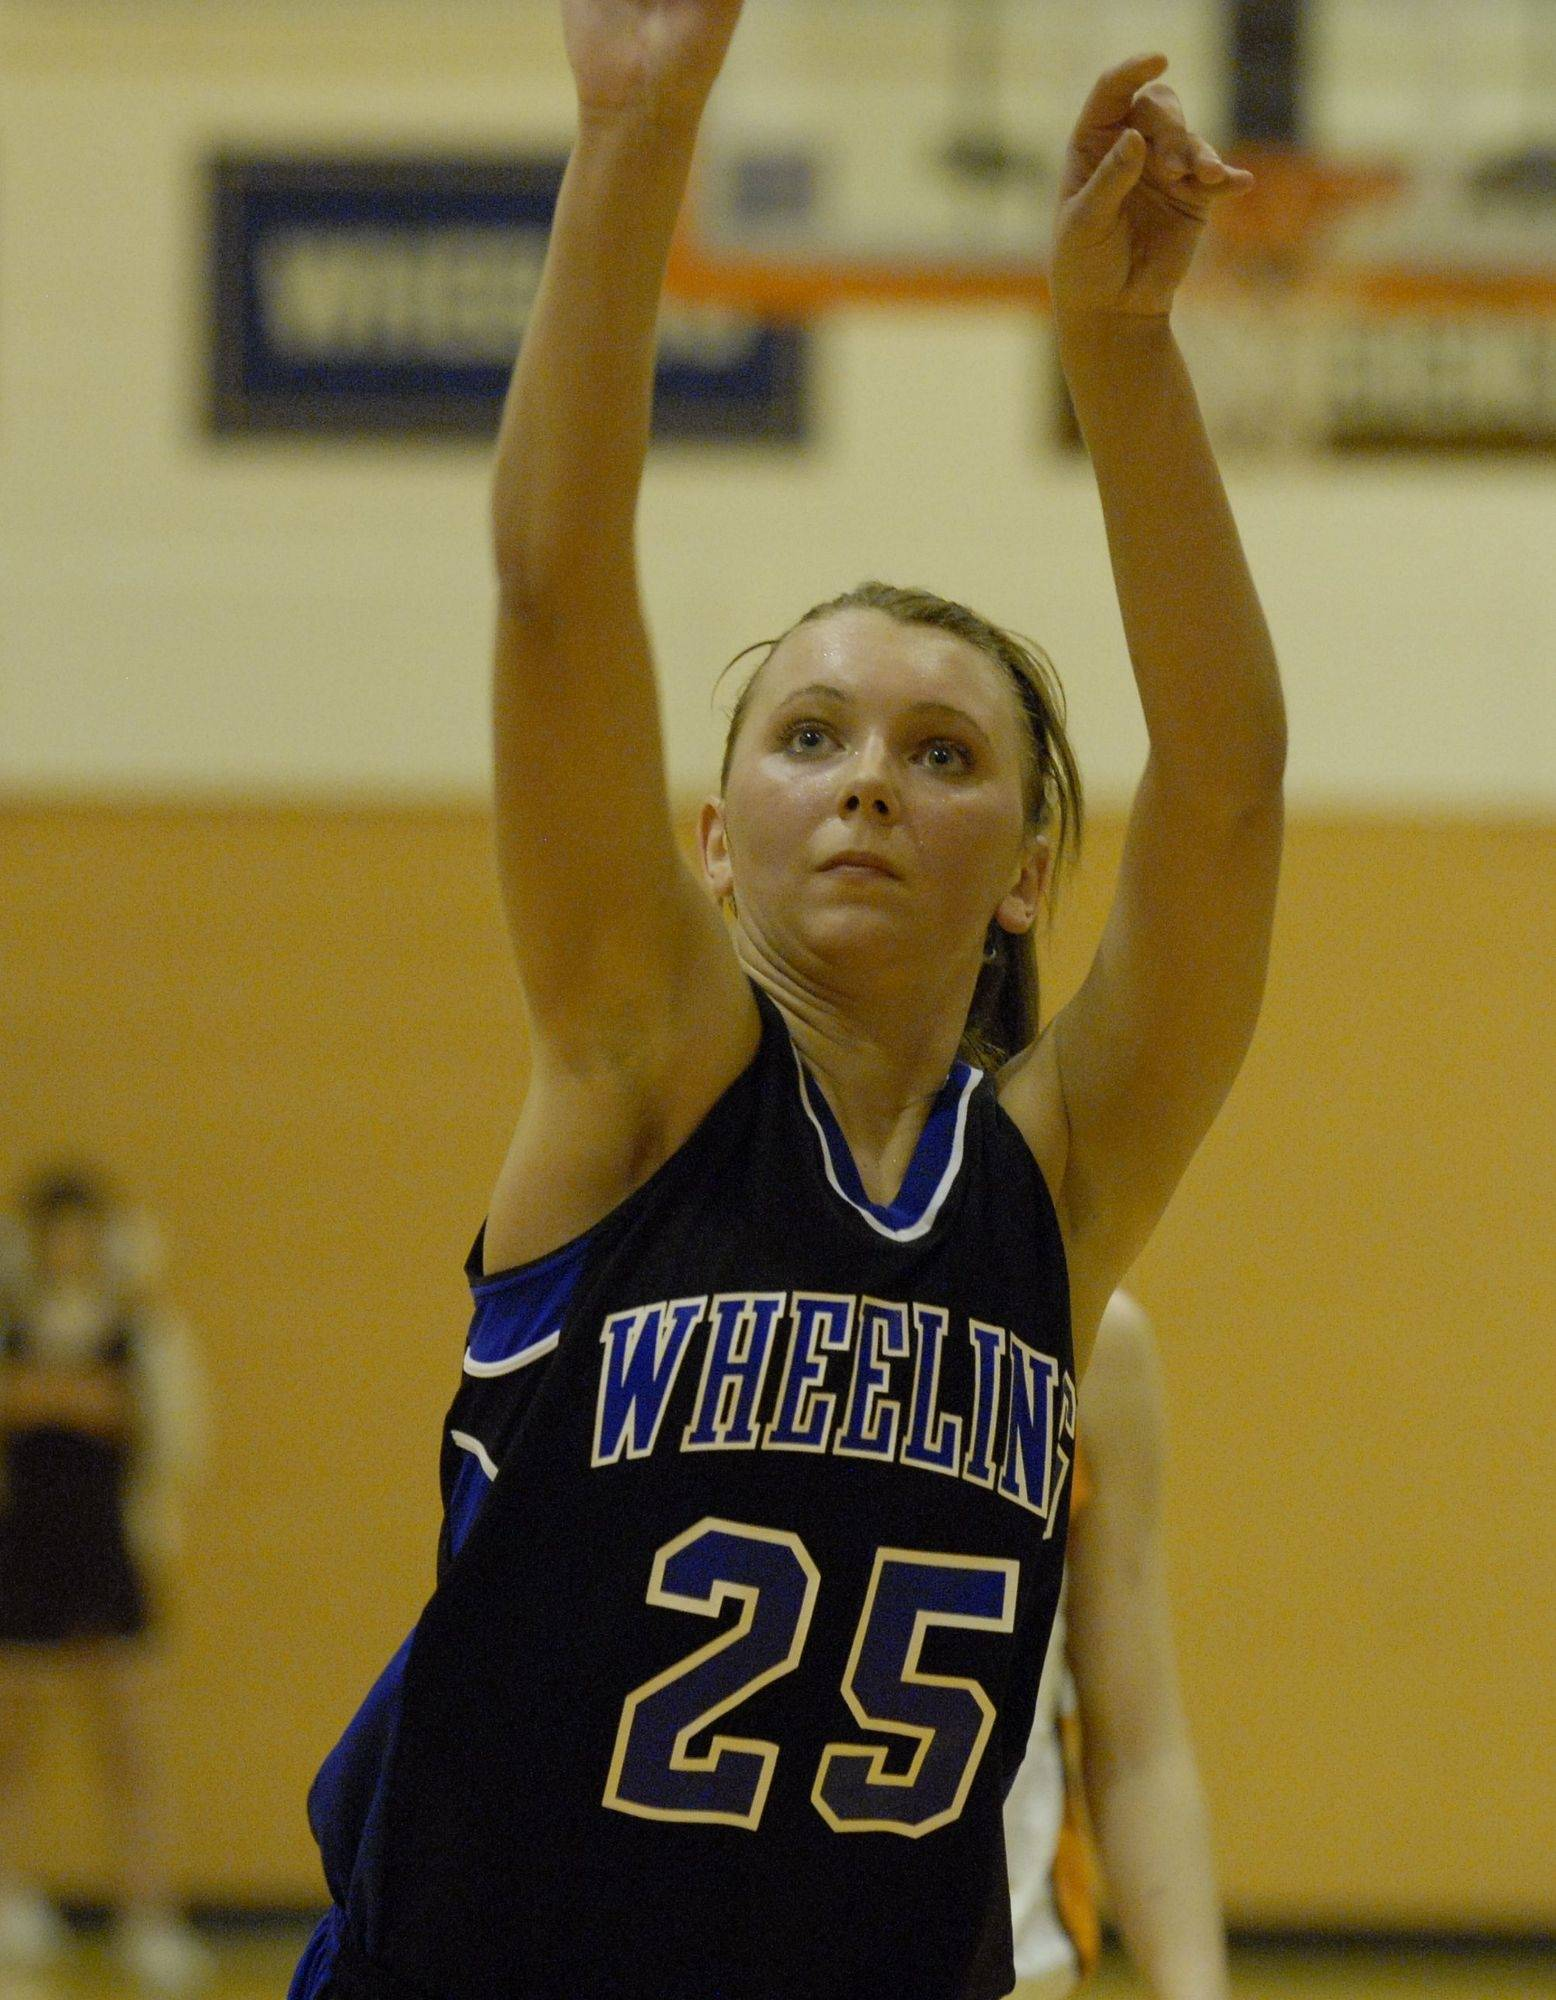 Bianca Szafarowicz and her Wheeling teammates are shooting for a third consecutive Mid-Suburban League title tonight.